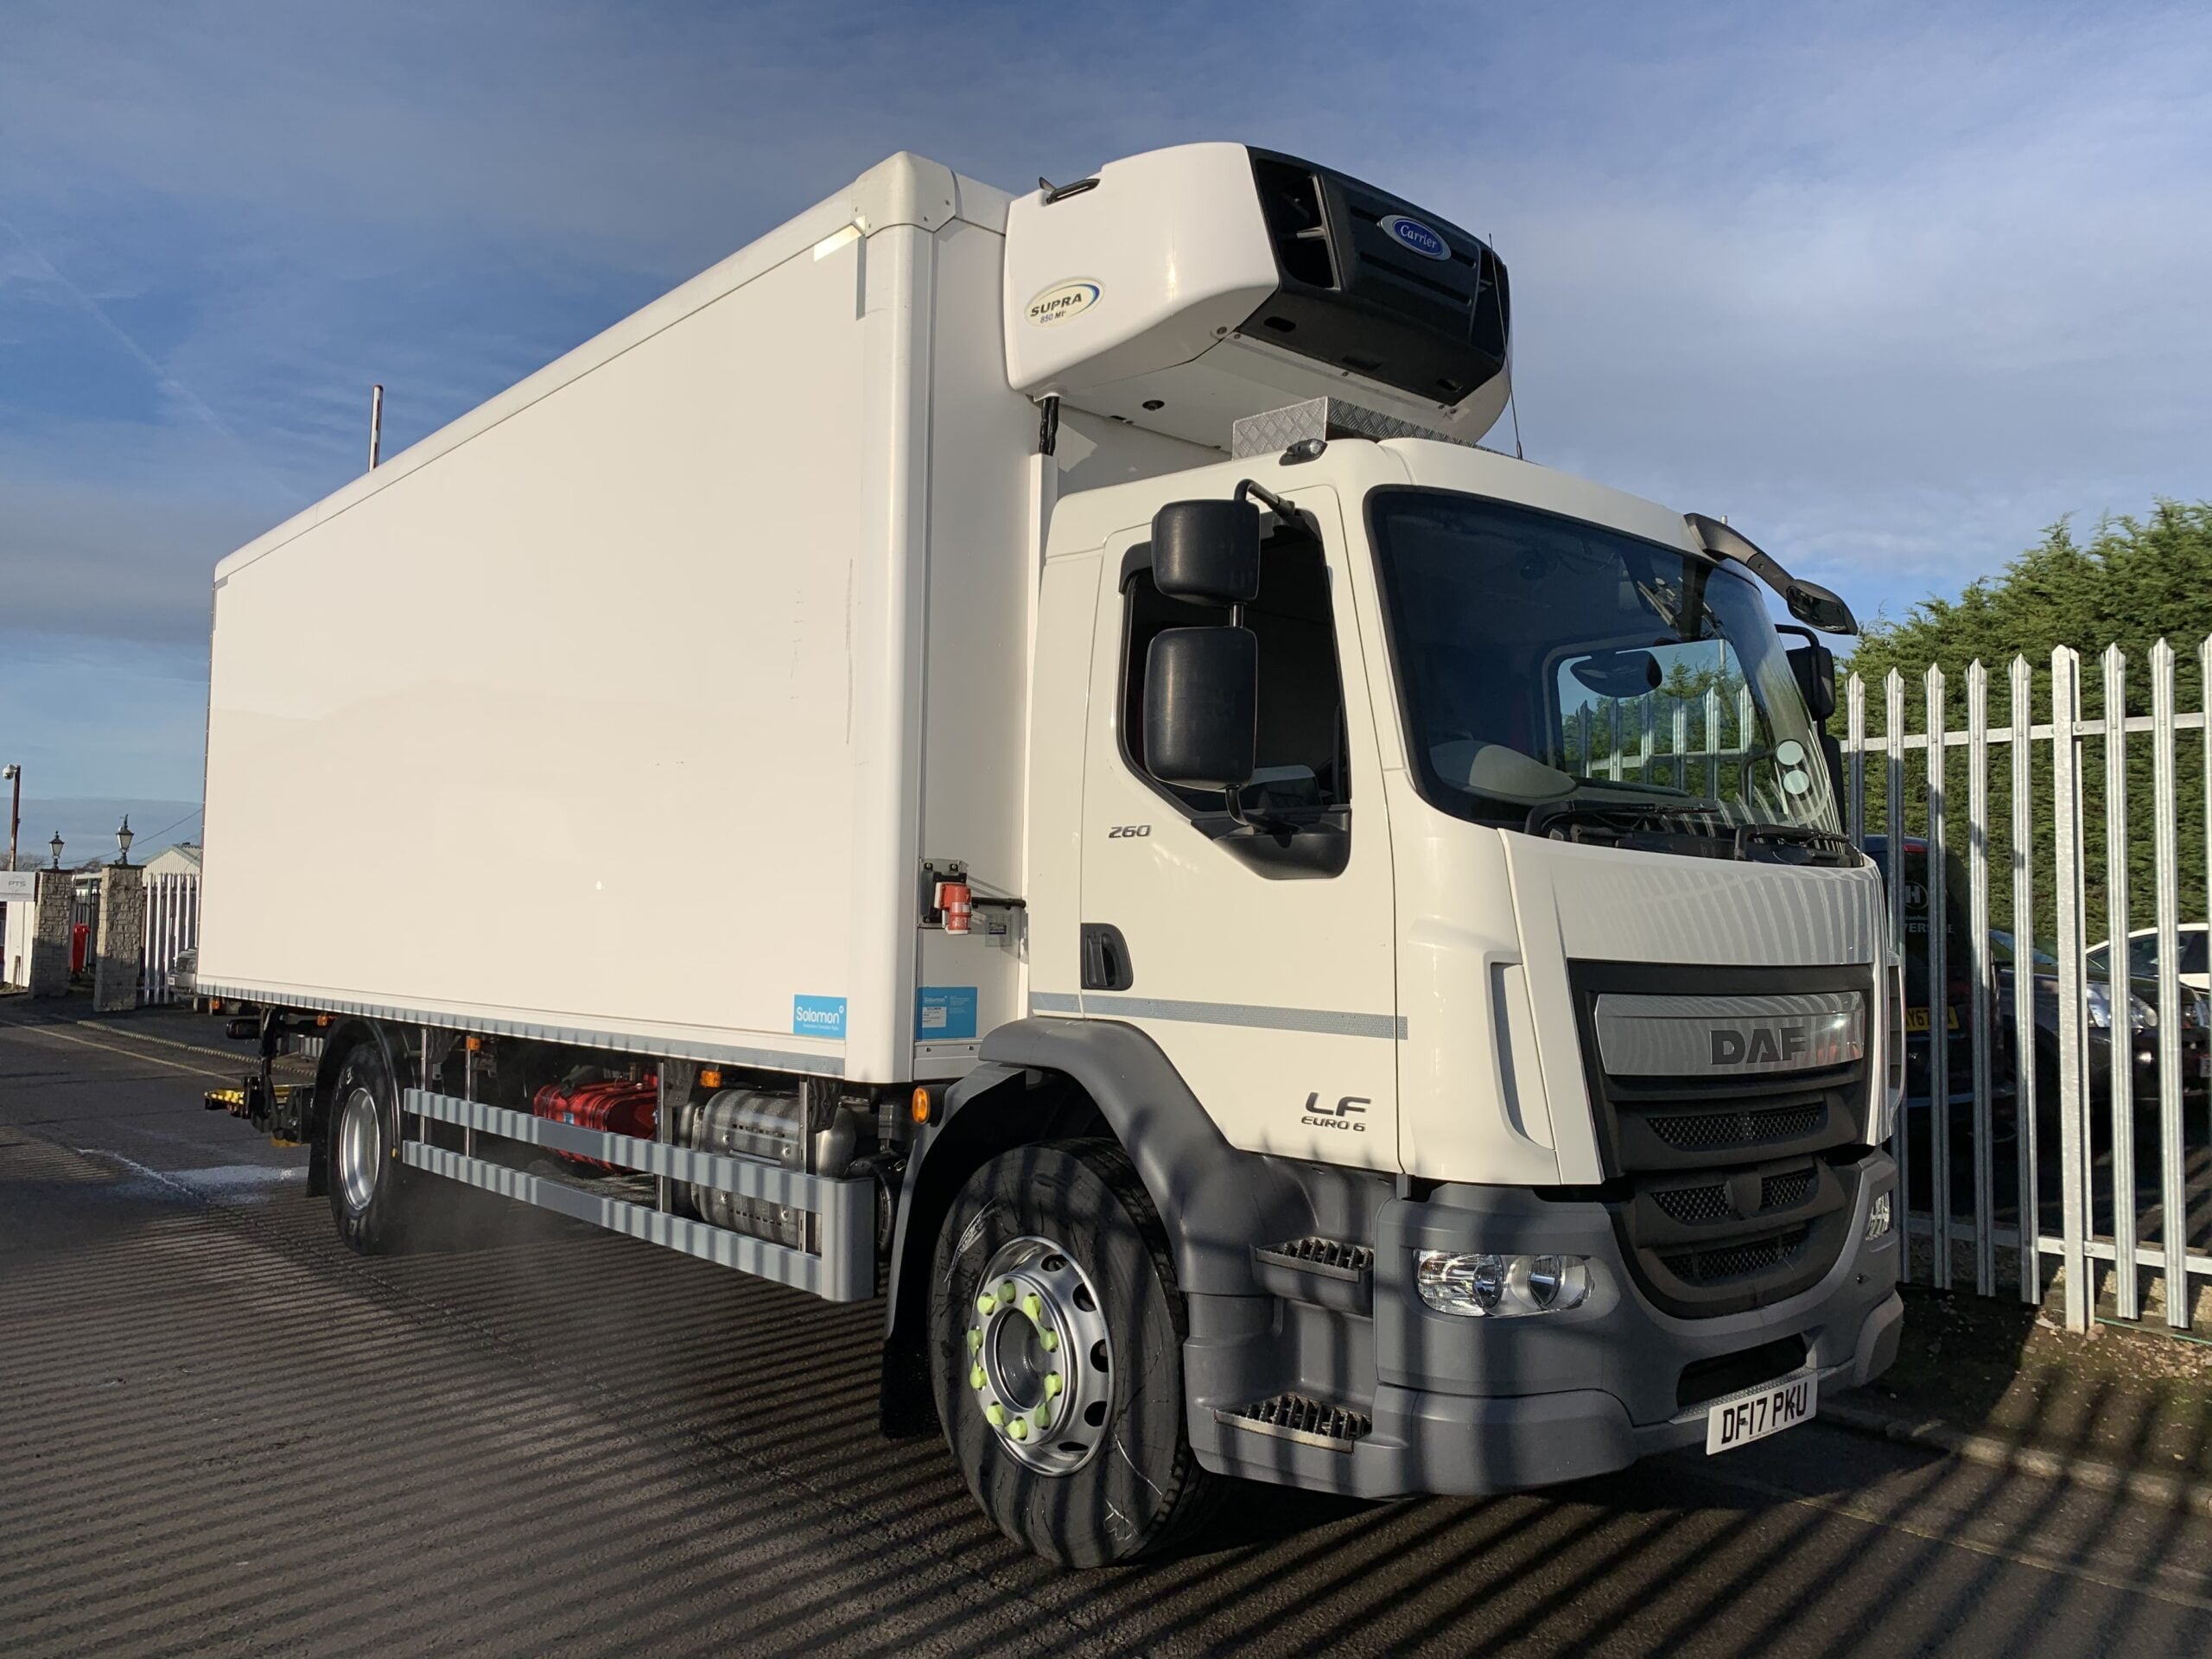 2017 DAF LF Fridge Tailift, 18 Tonne, Dhollandia Tuckunder Tailift (1500kg Capacity), Carrier 850 Mt Fridge Engine, Euro 6, Automatic Gearbox, Day Cab, Solomon Body, Roller Shutter Rear Doors, Near Side Door in Body, Resin Floor, 2 x Loadlock Rails, Low Mileage, Choice & Warranty Available.